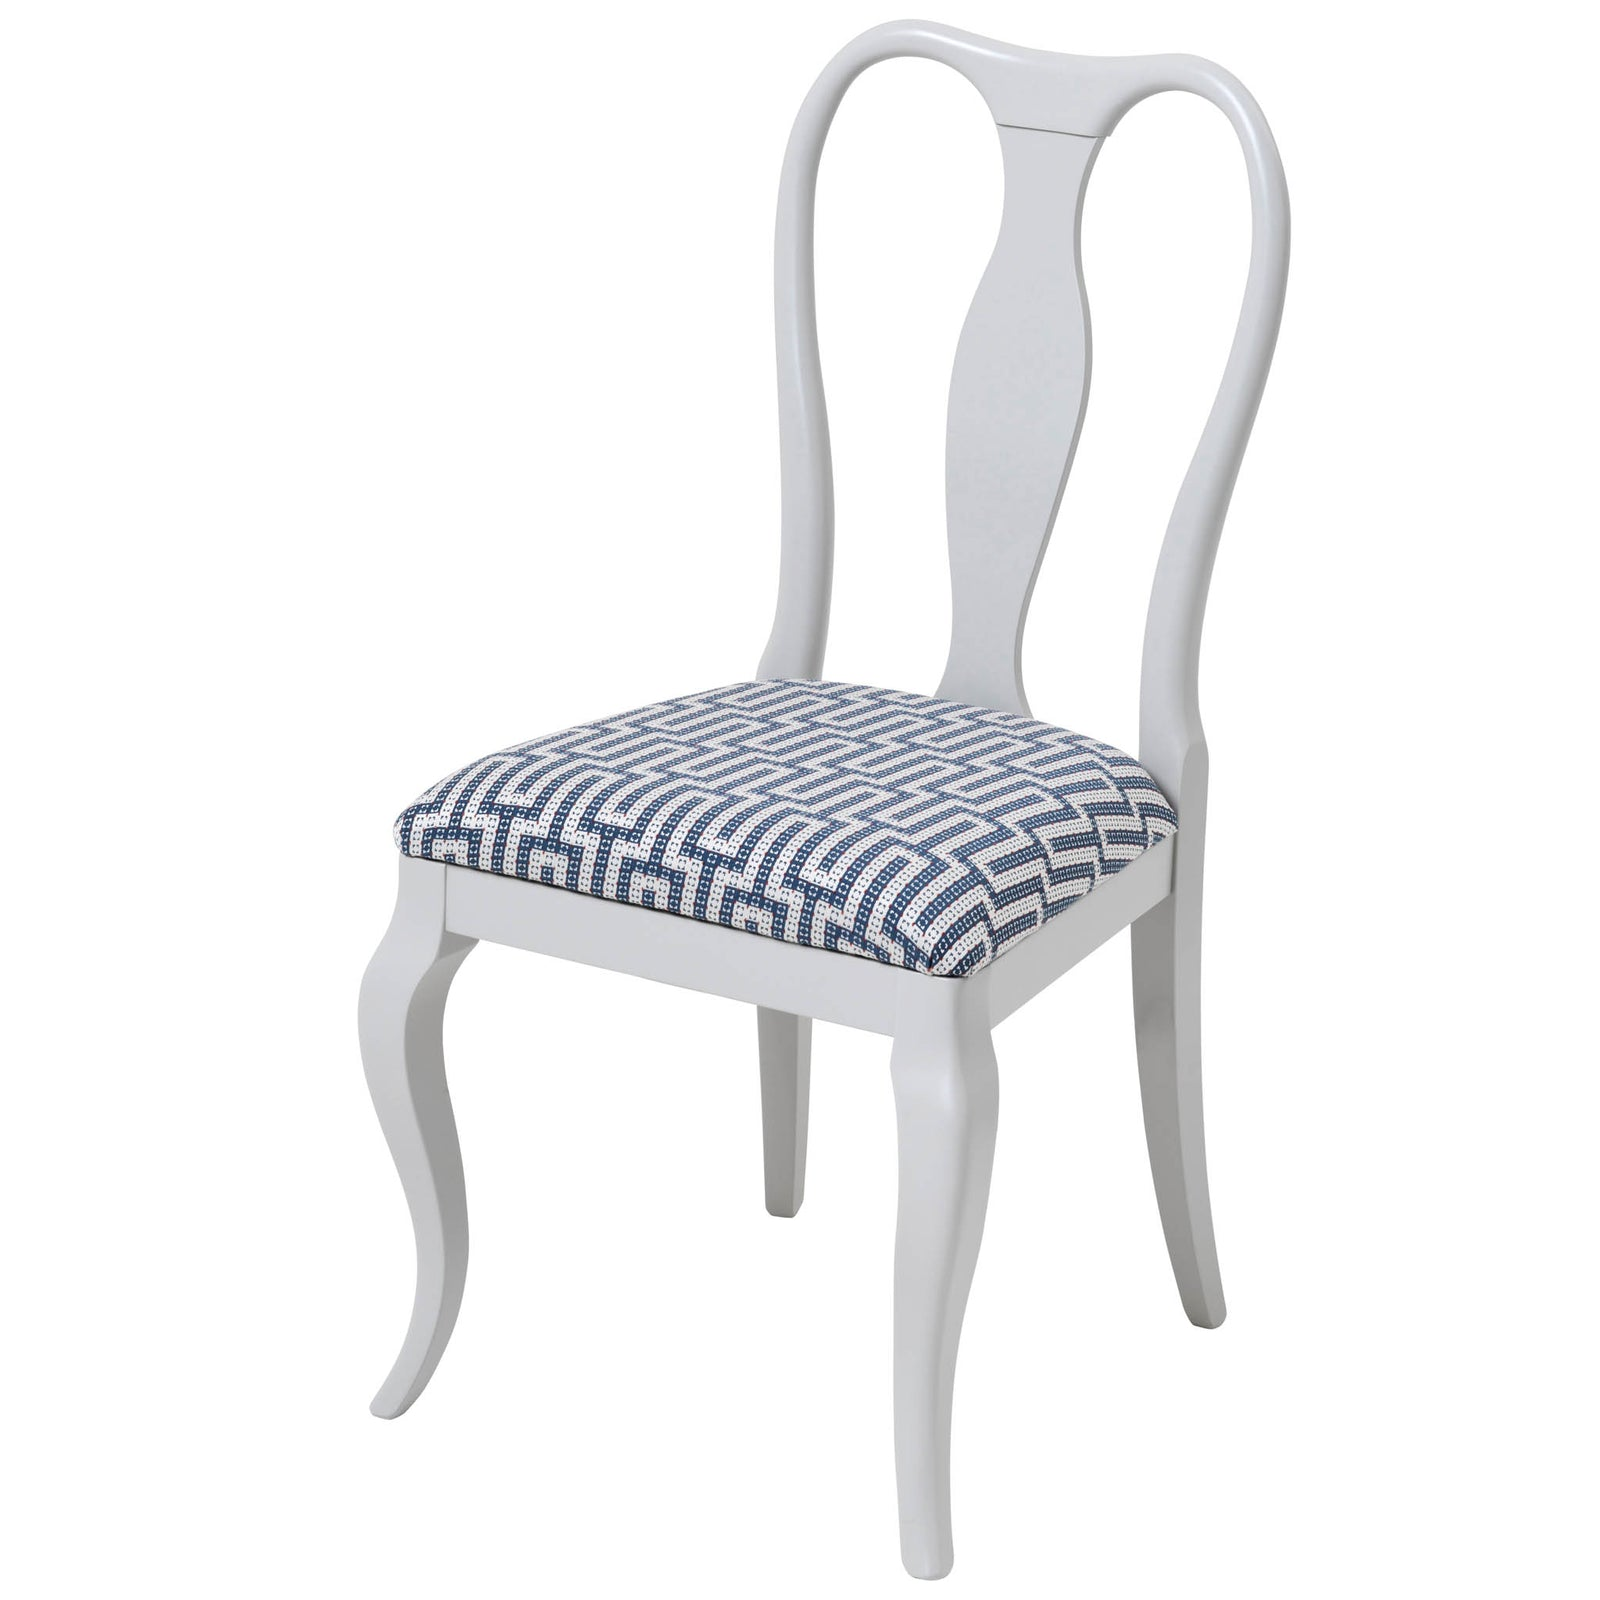 The Marco Side Chair Upholstered in the striking Linnean Weave from Sanderson